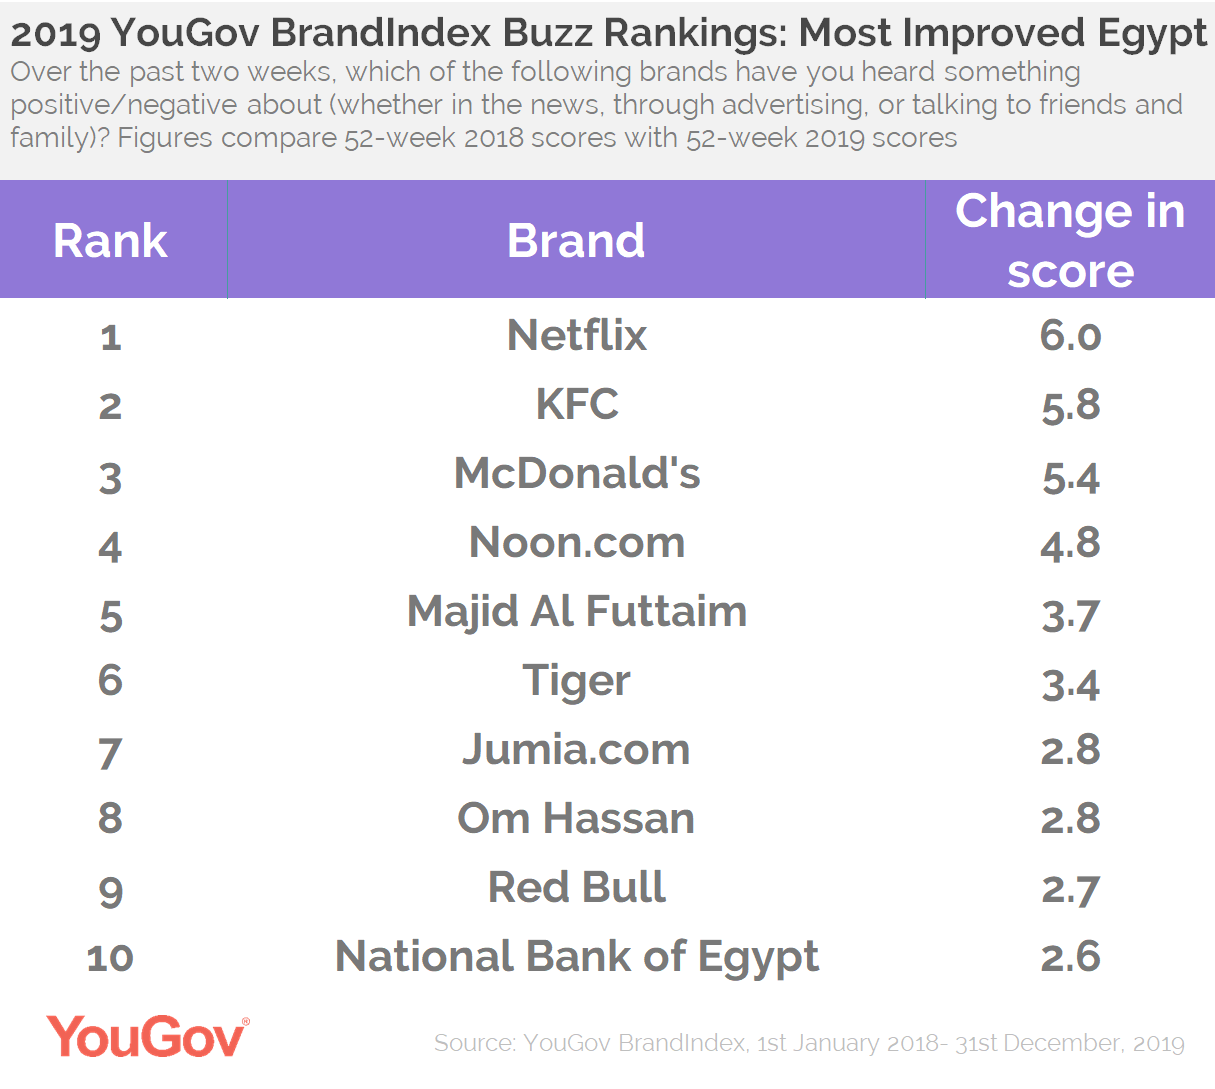 Buzz Rankings 201- Improvers UAE